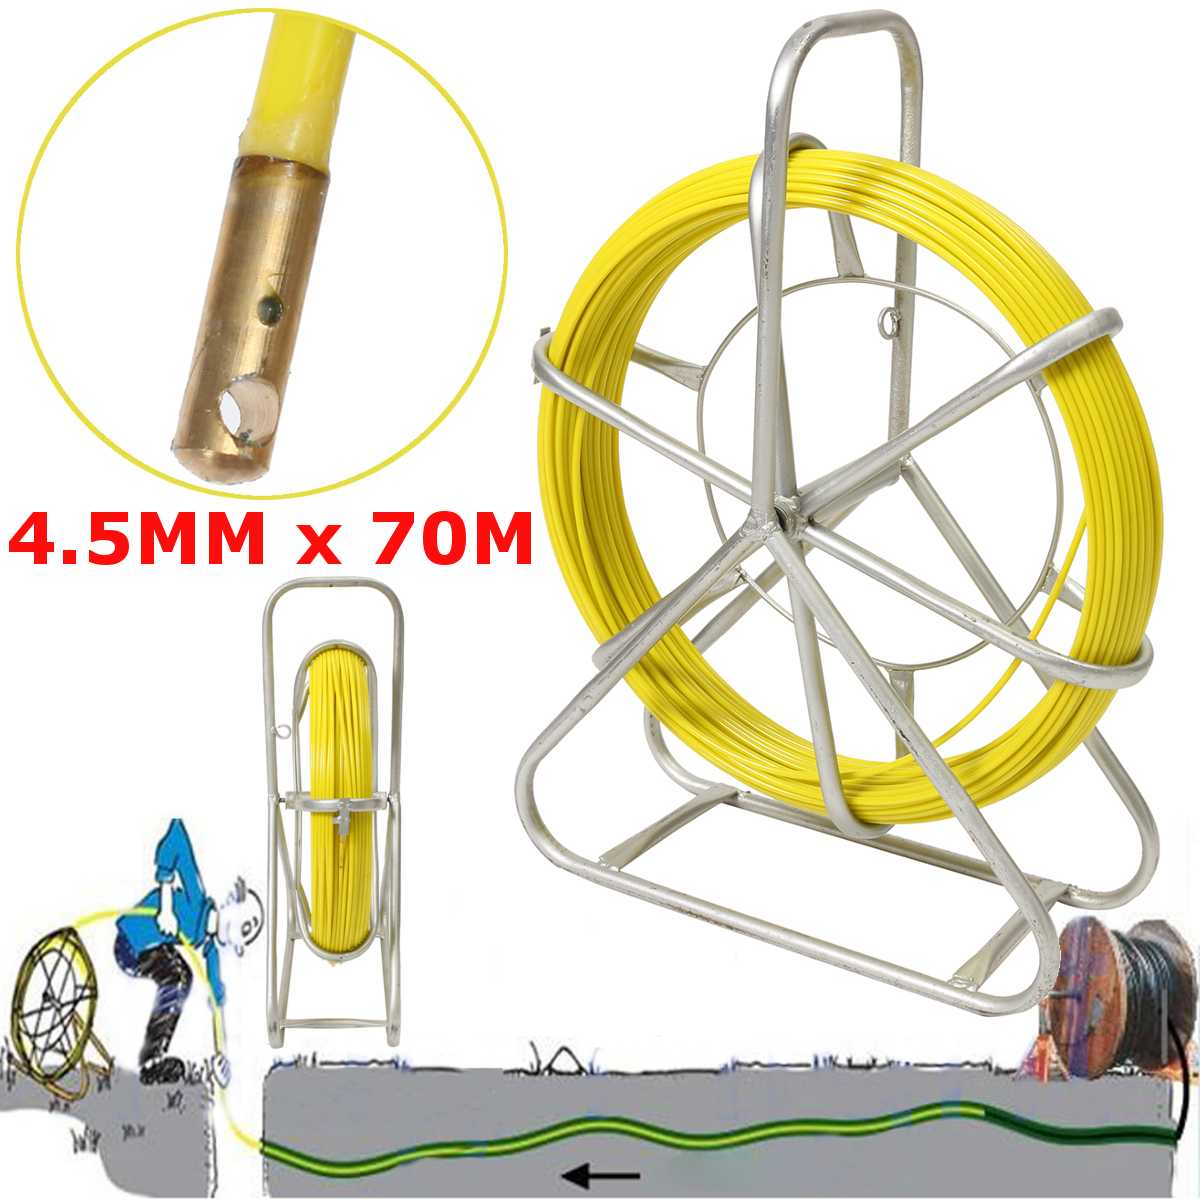 4.5mm 70M Electric Reel Wire Cable Running Rod Duct Rodder Fish Tape Puller used for Telecom Wall and Floor Conduit4.5mm 70M Electric Reel Wire Cable Running Rod Duct Rodder Fish Tape Puller used for Telecom Wall and Floor Conduit